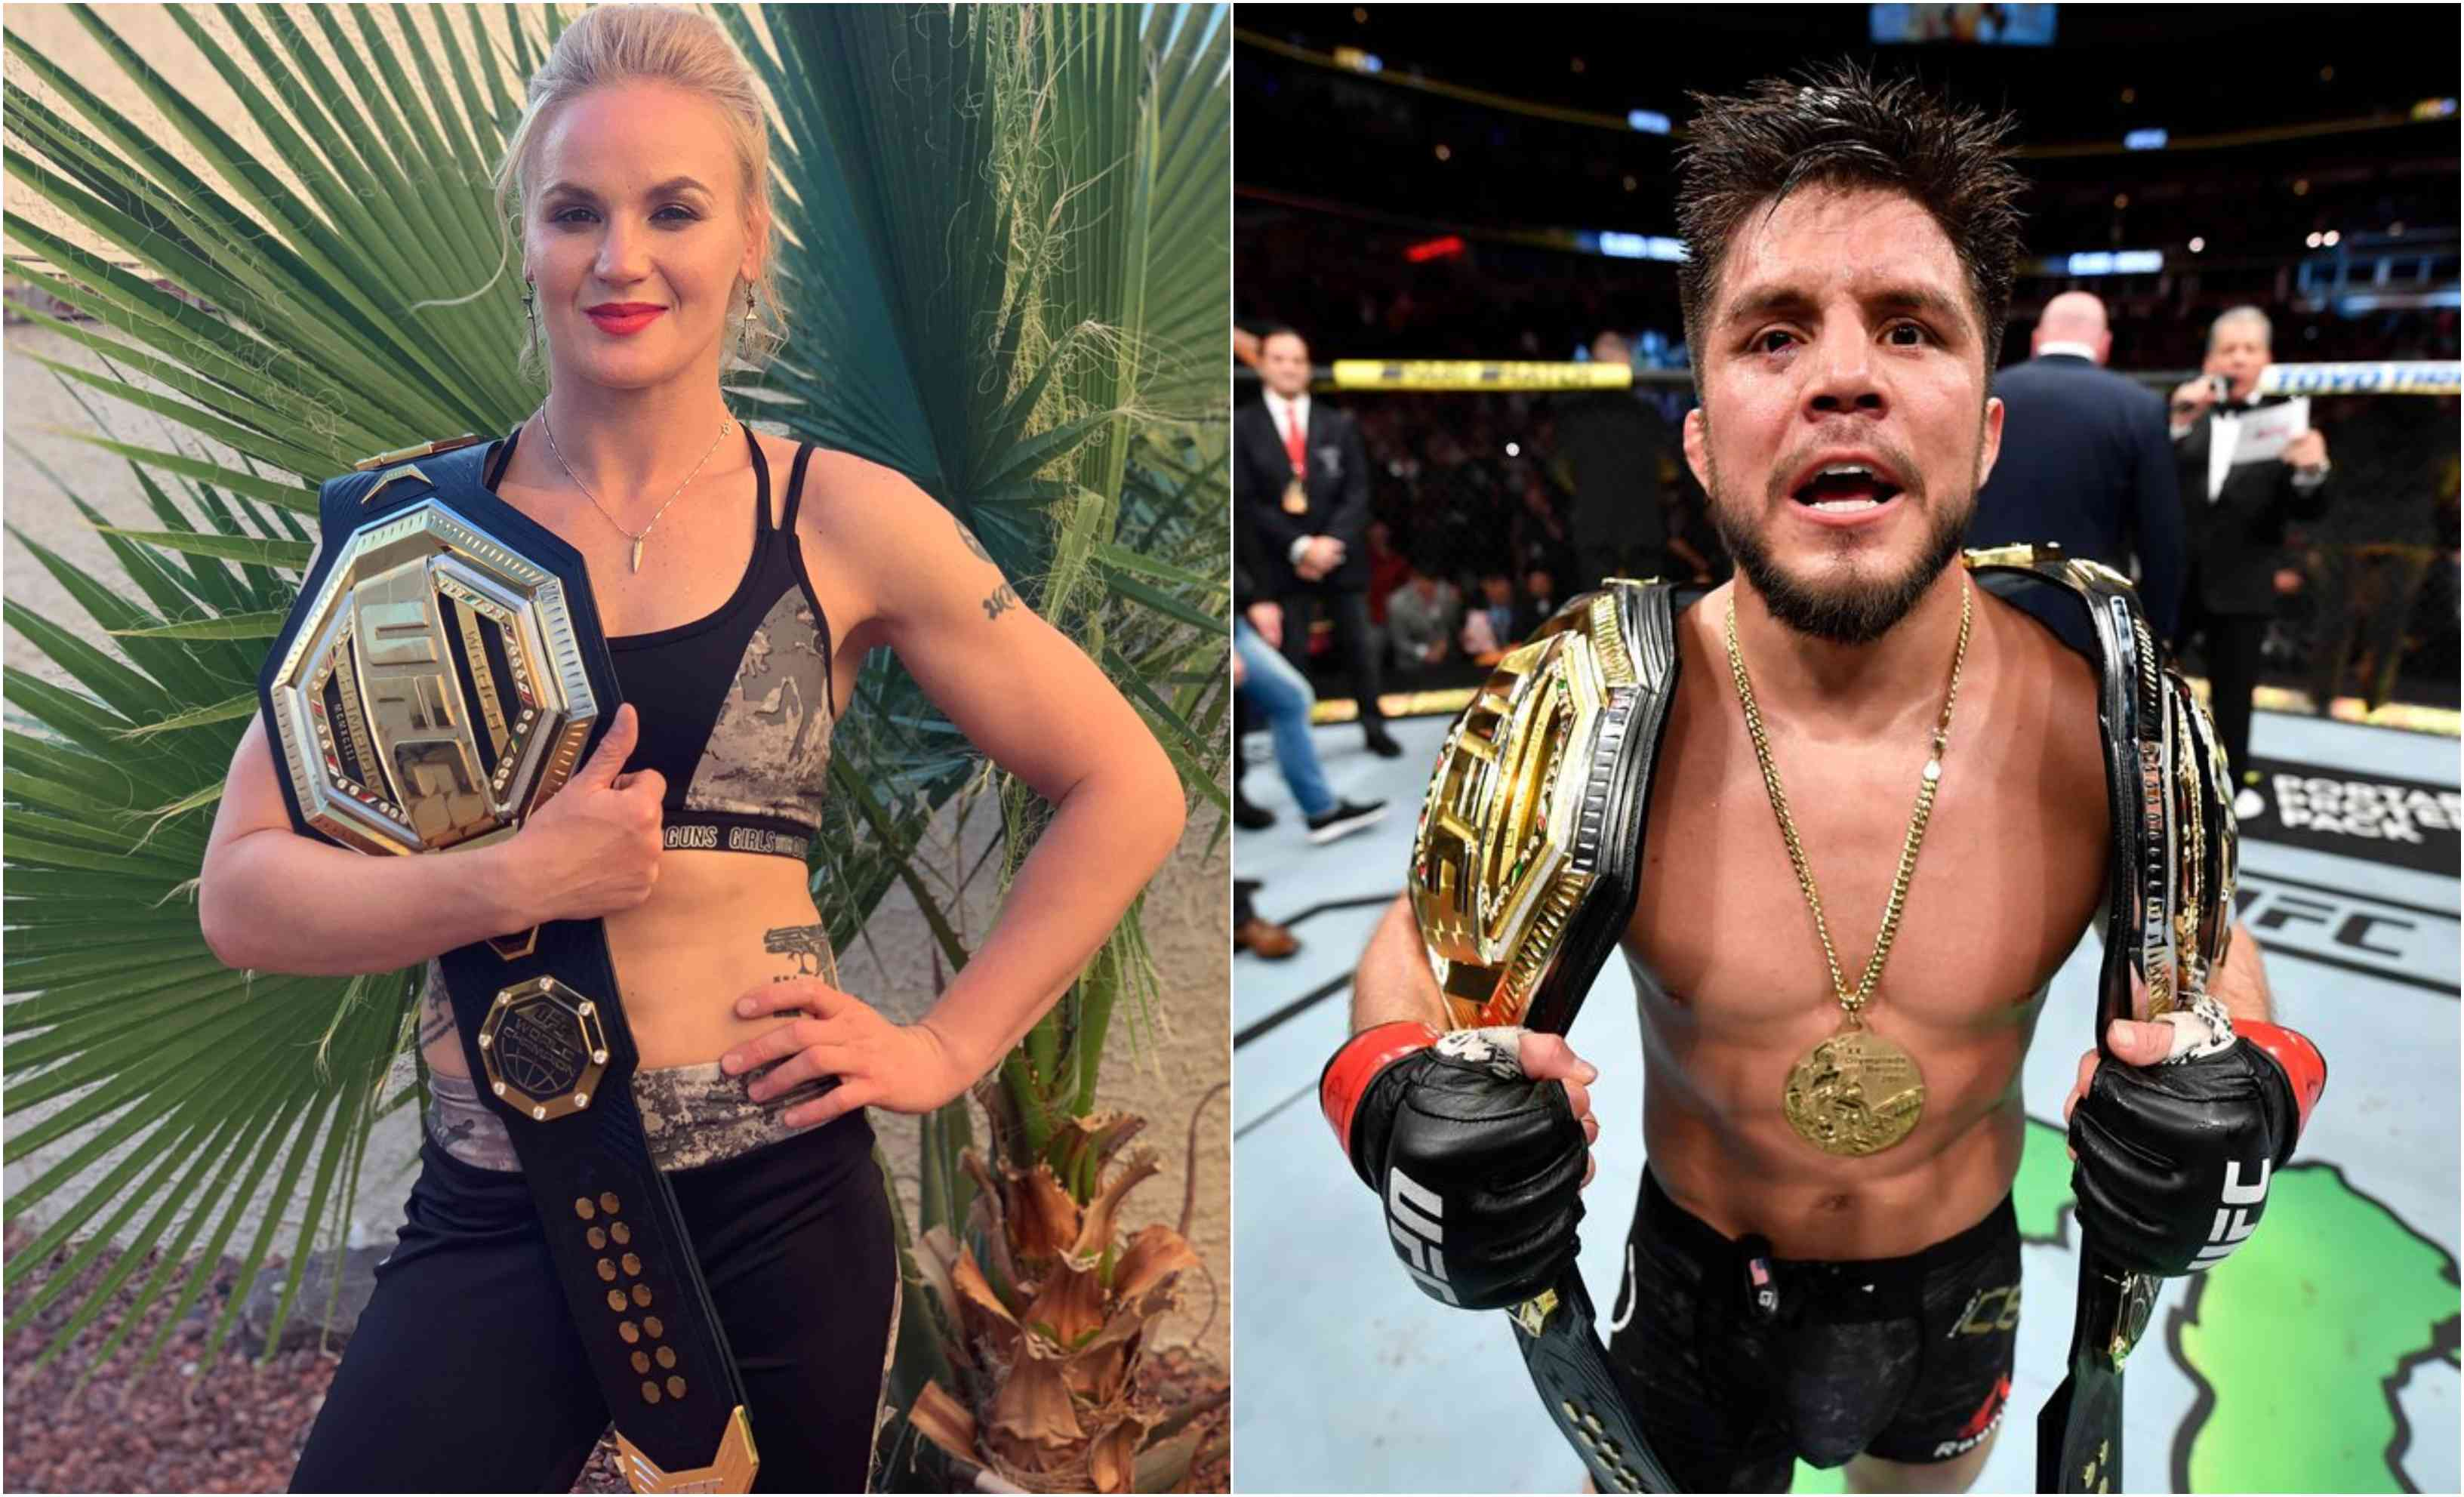 Dana White on Cejudo's call out of Valentina Shevchenko: I can't even f***ing wrap my brain around that - Cejudo